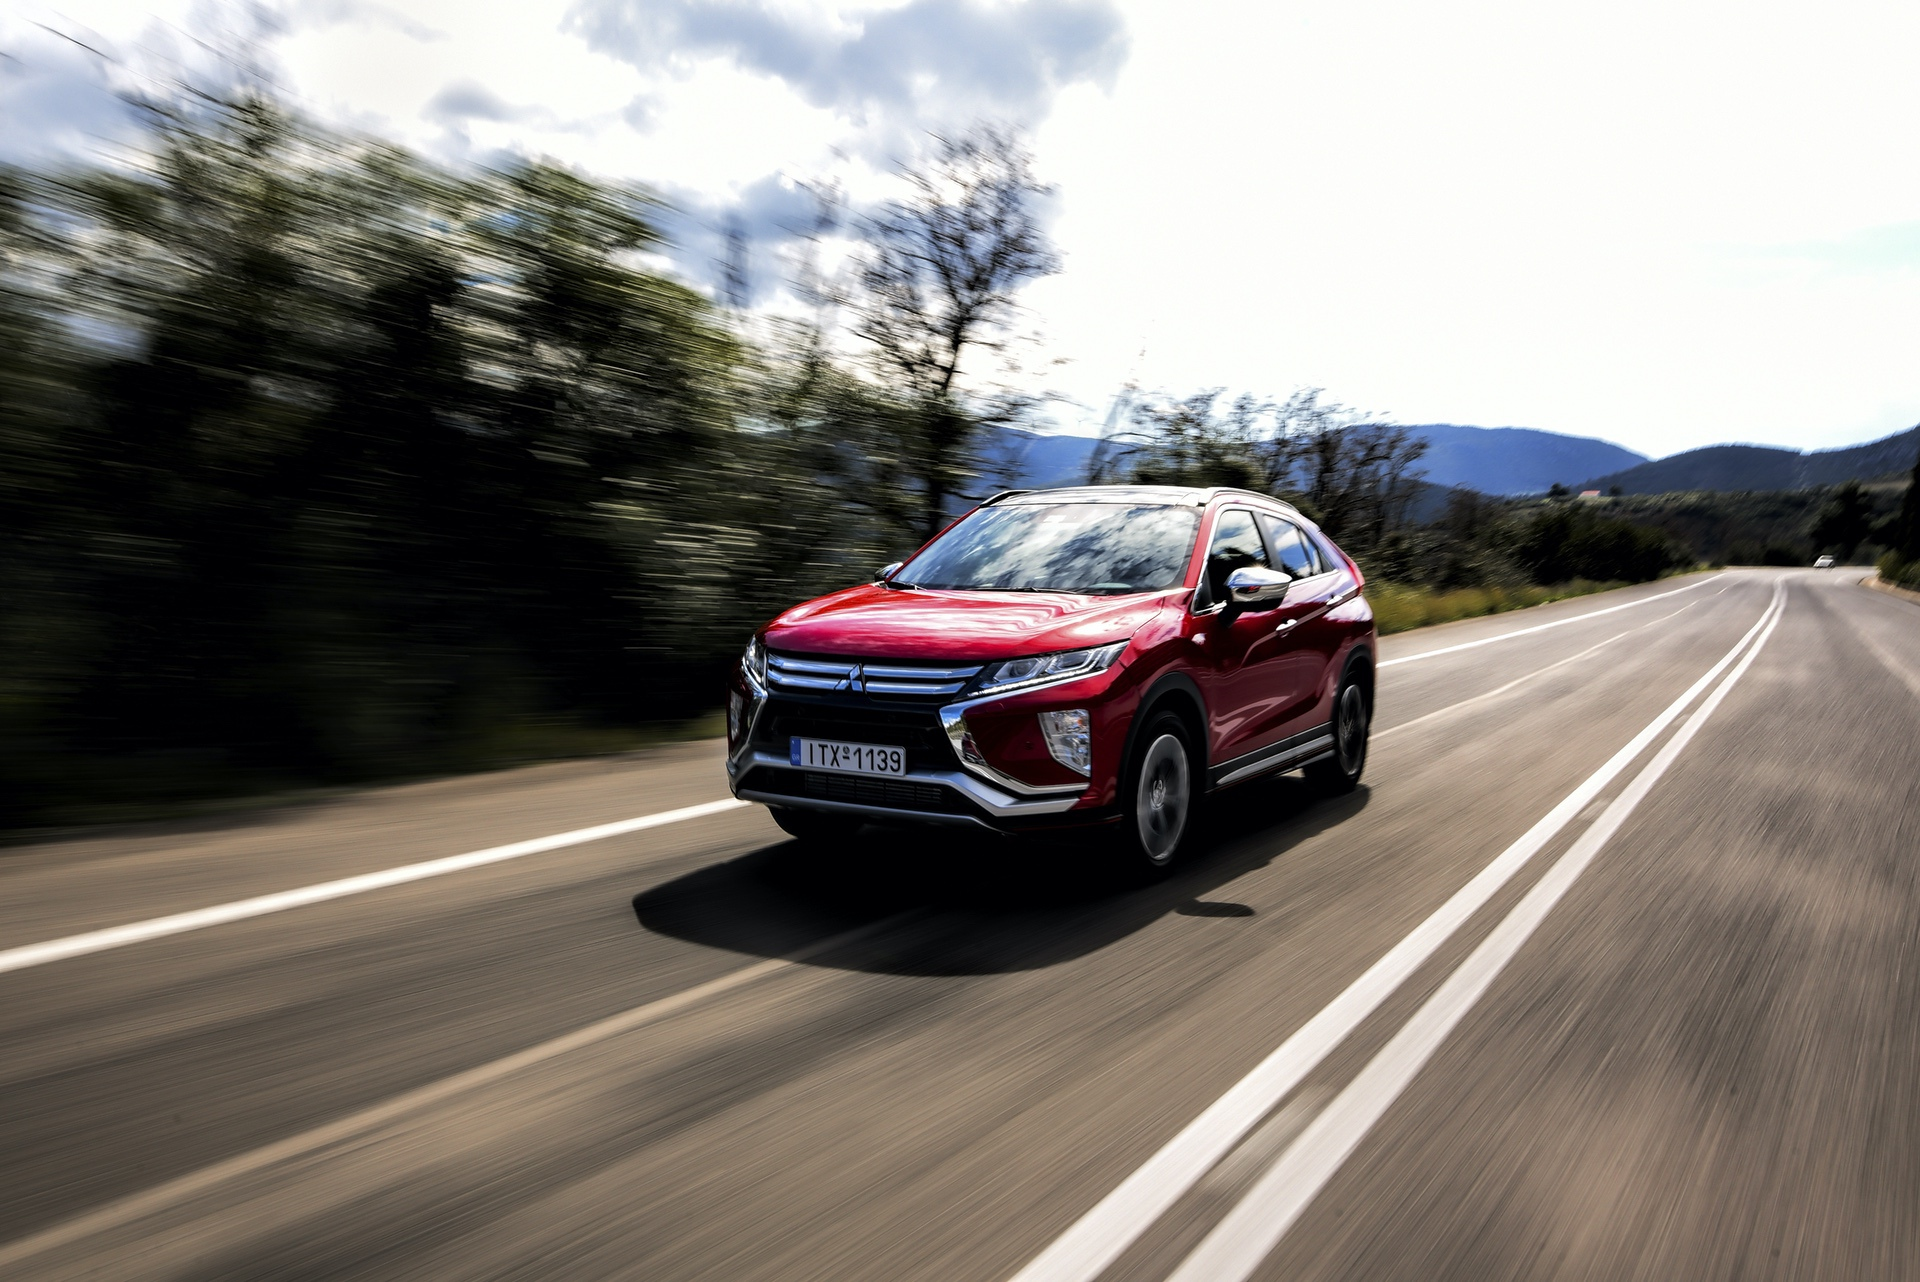 Mitsubishi_Eclipse_Cross_Greek_presskit_0044